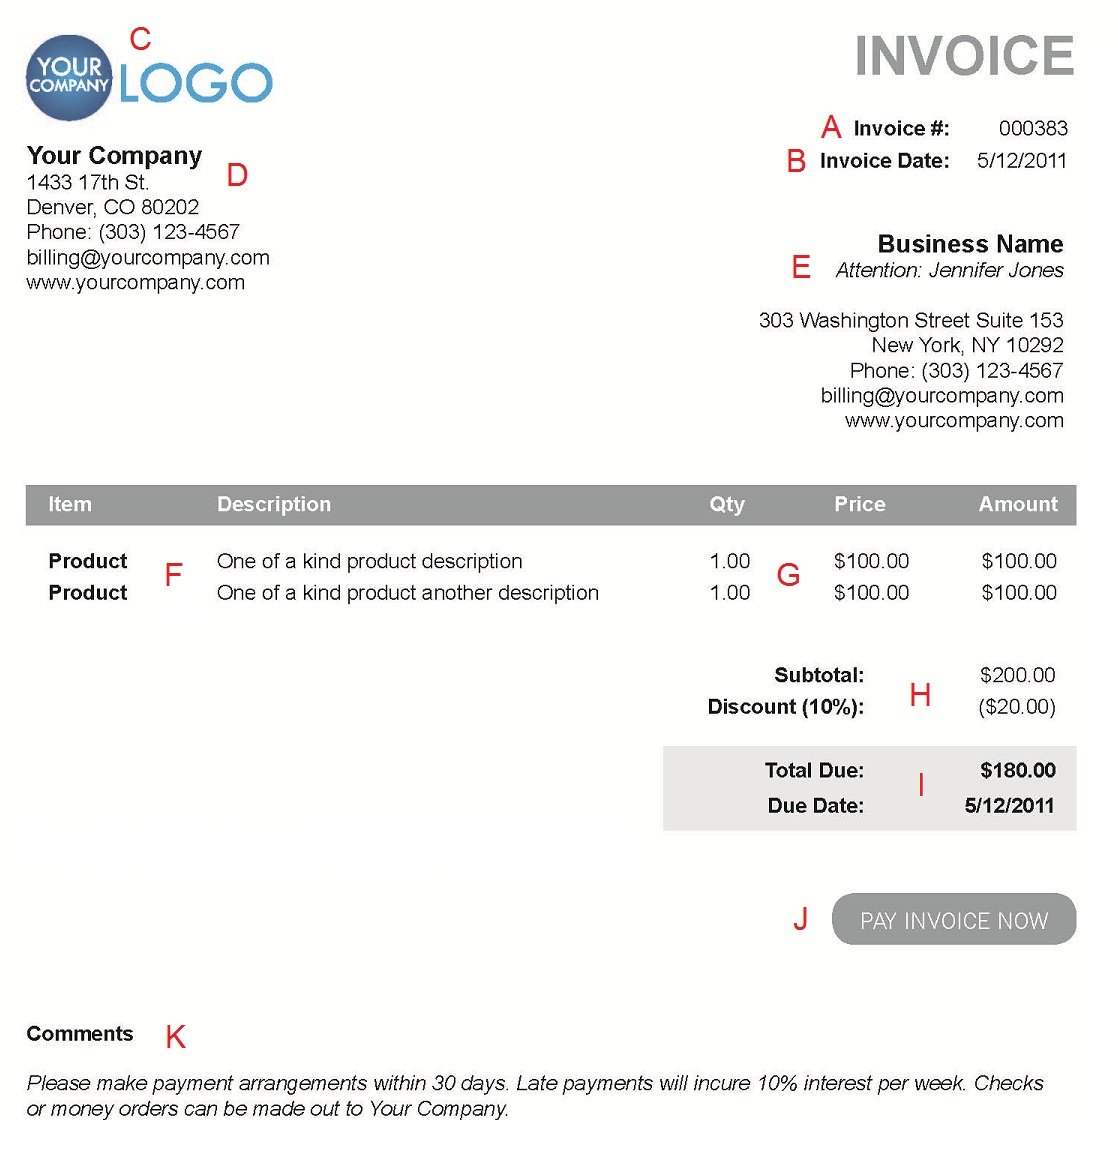 Opposenewapstandardsus  Seductive The  Different Sections Of An Electronic Payment Invoice With Licious A  With Divine Forwarders Certificate Of Receipt Also Sample Cash Receipt Form In Addition Lemon Receipt Scanner And What Are Depository Receipts As Well As App Receipt Scanner Additionally Electronic Receipt System From Paysimplecom With Opposenewapstandardsus  Licious The  Different Sections Of An Electronic Payment Invoice With Divine A  And Seductive Forwarders Certificate Of Receipt Also Sample Cash Receipt Form In Addition Lemon Receipt Scanner From Paysimplecom